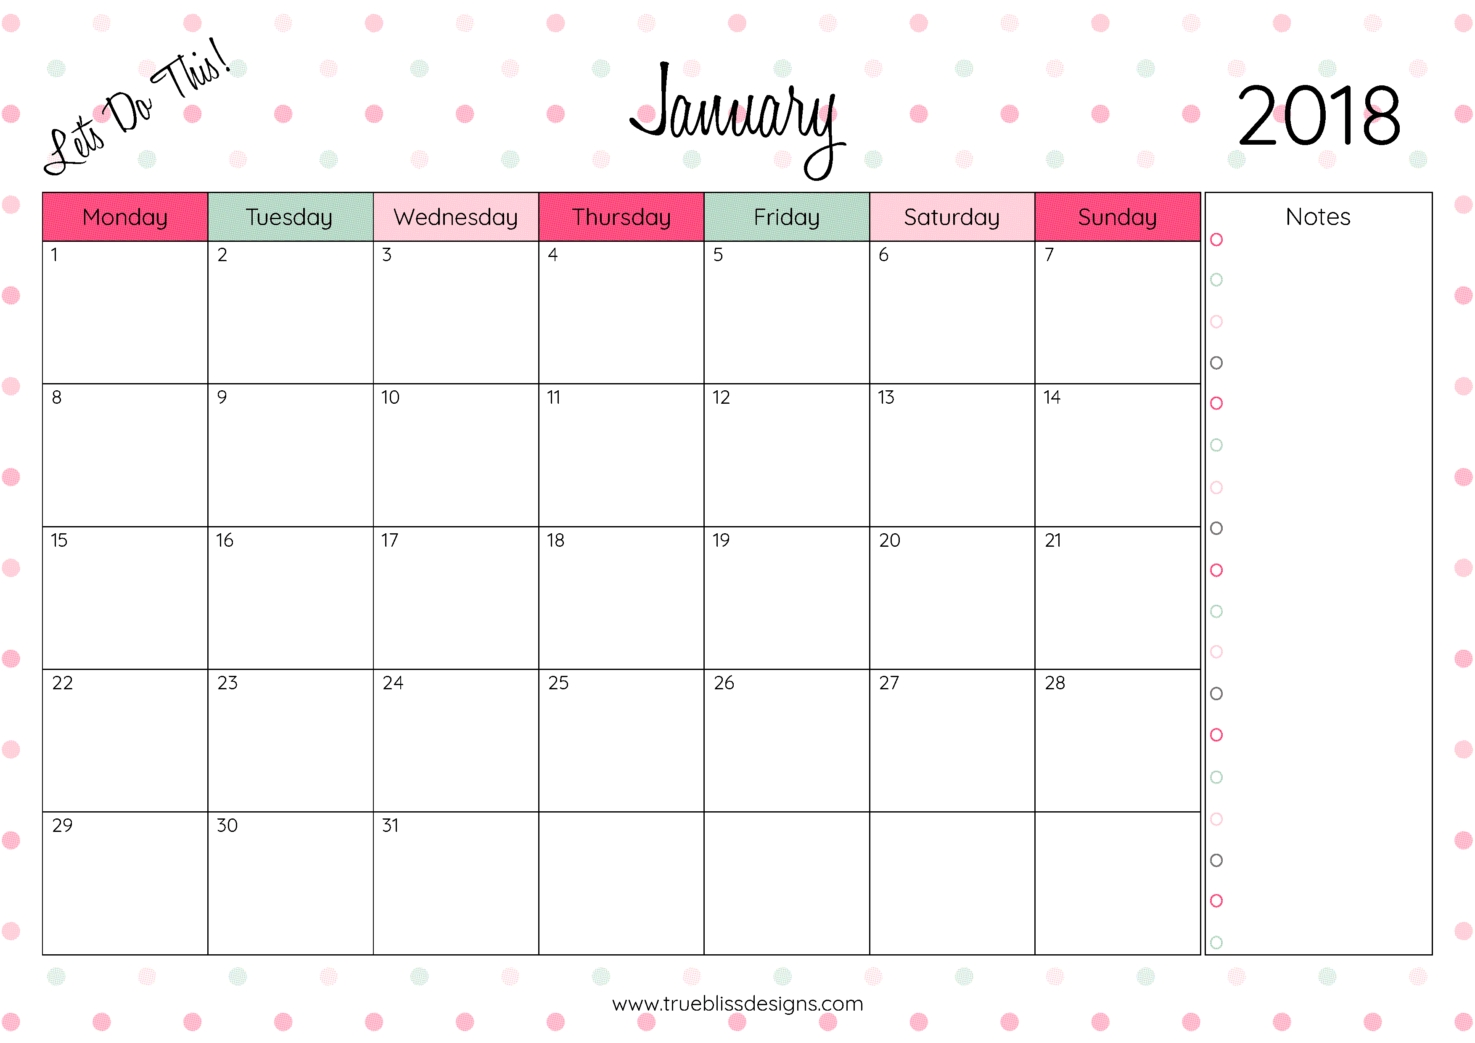 month calendar 2018  Tumblr Calendar 2018 By Month Printables erdferdf